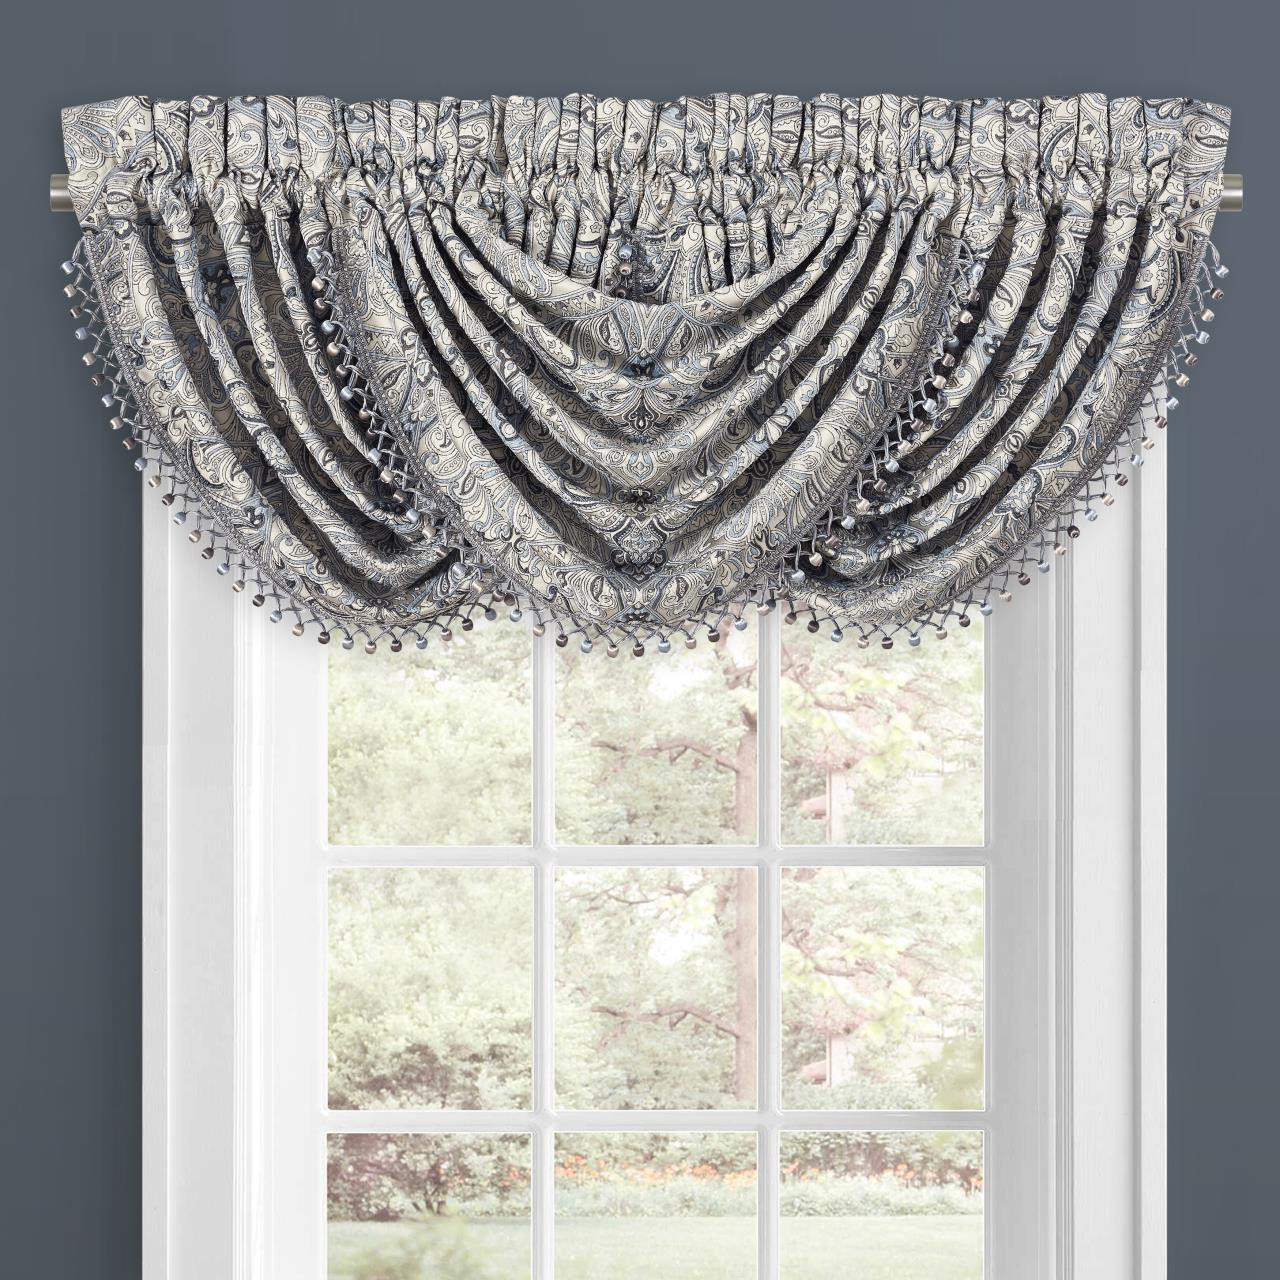 Alexis Powder Blue Waterfall Valance By J Queen New York Paul S Home Fashions